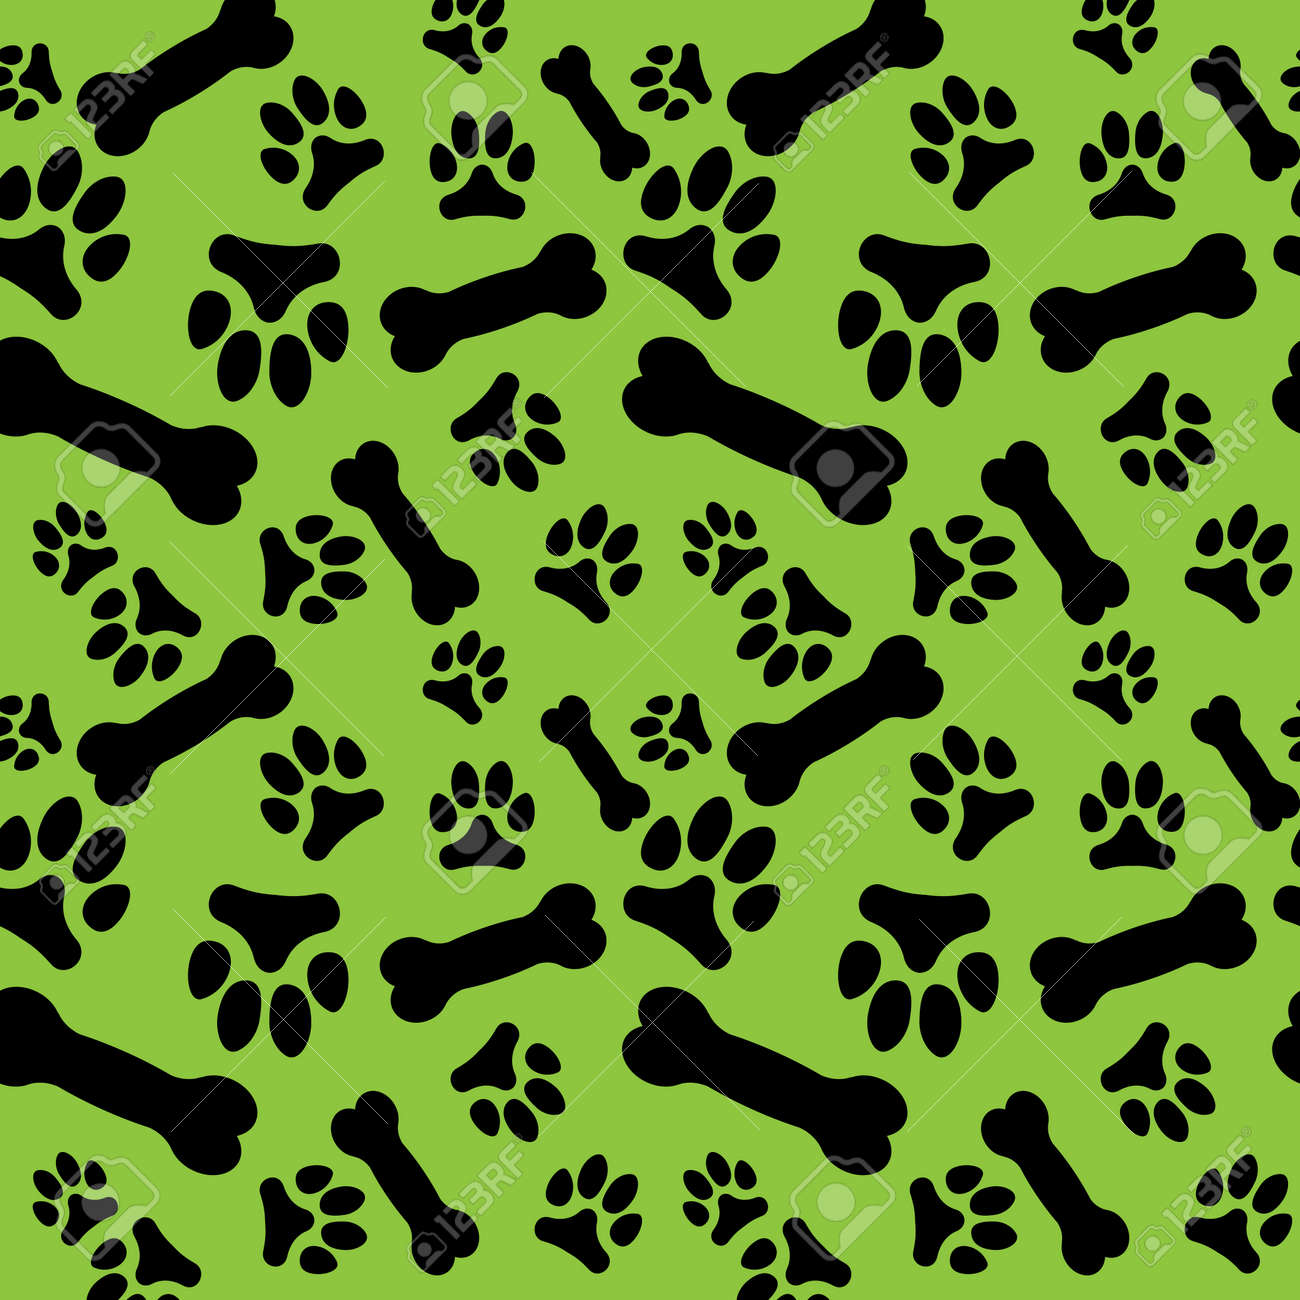 e6a3c2a34289 Seamless pattern with black dog paw prints and bones on a green background. Vector  illustration